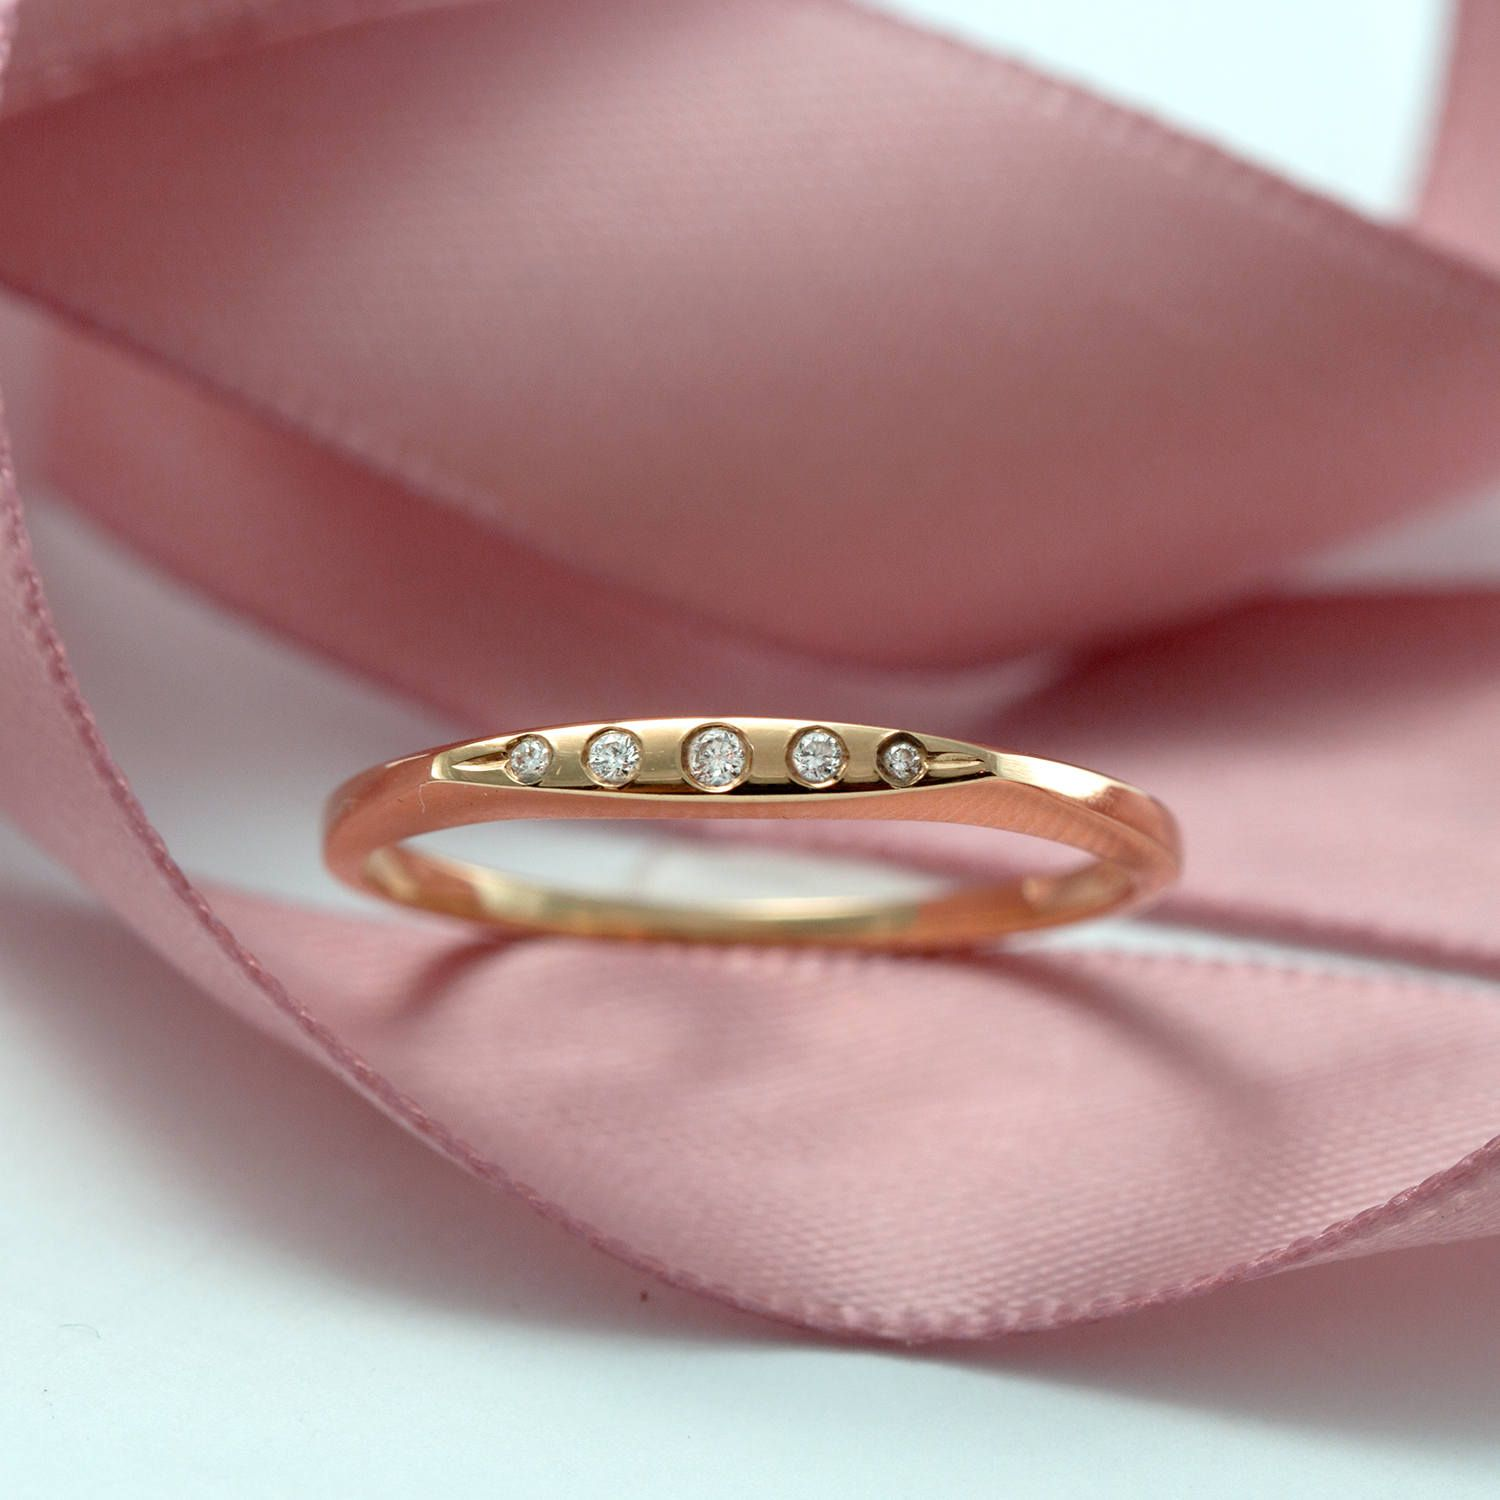 p band everyday wedding anniversary pinky rings fullxfull jewelry recycled size pink gold rose thin ring stacking il